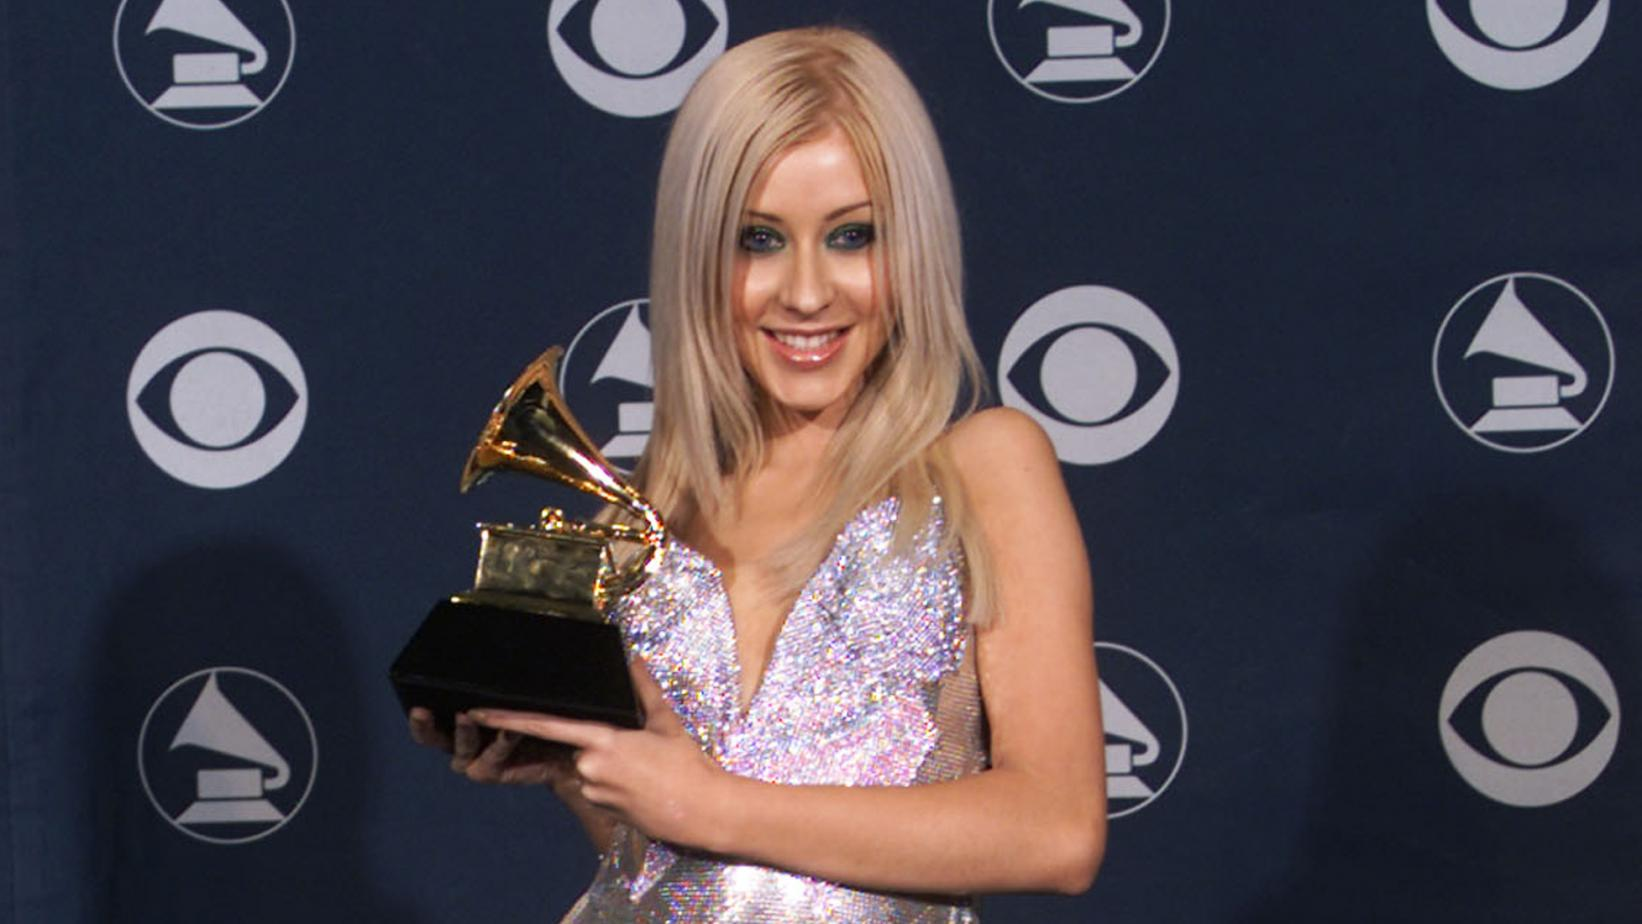 Christina Aguilera at 2000 GRAMMYs